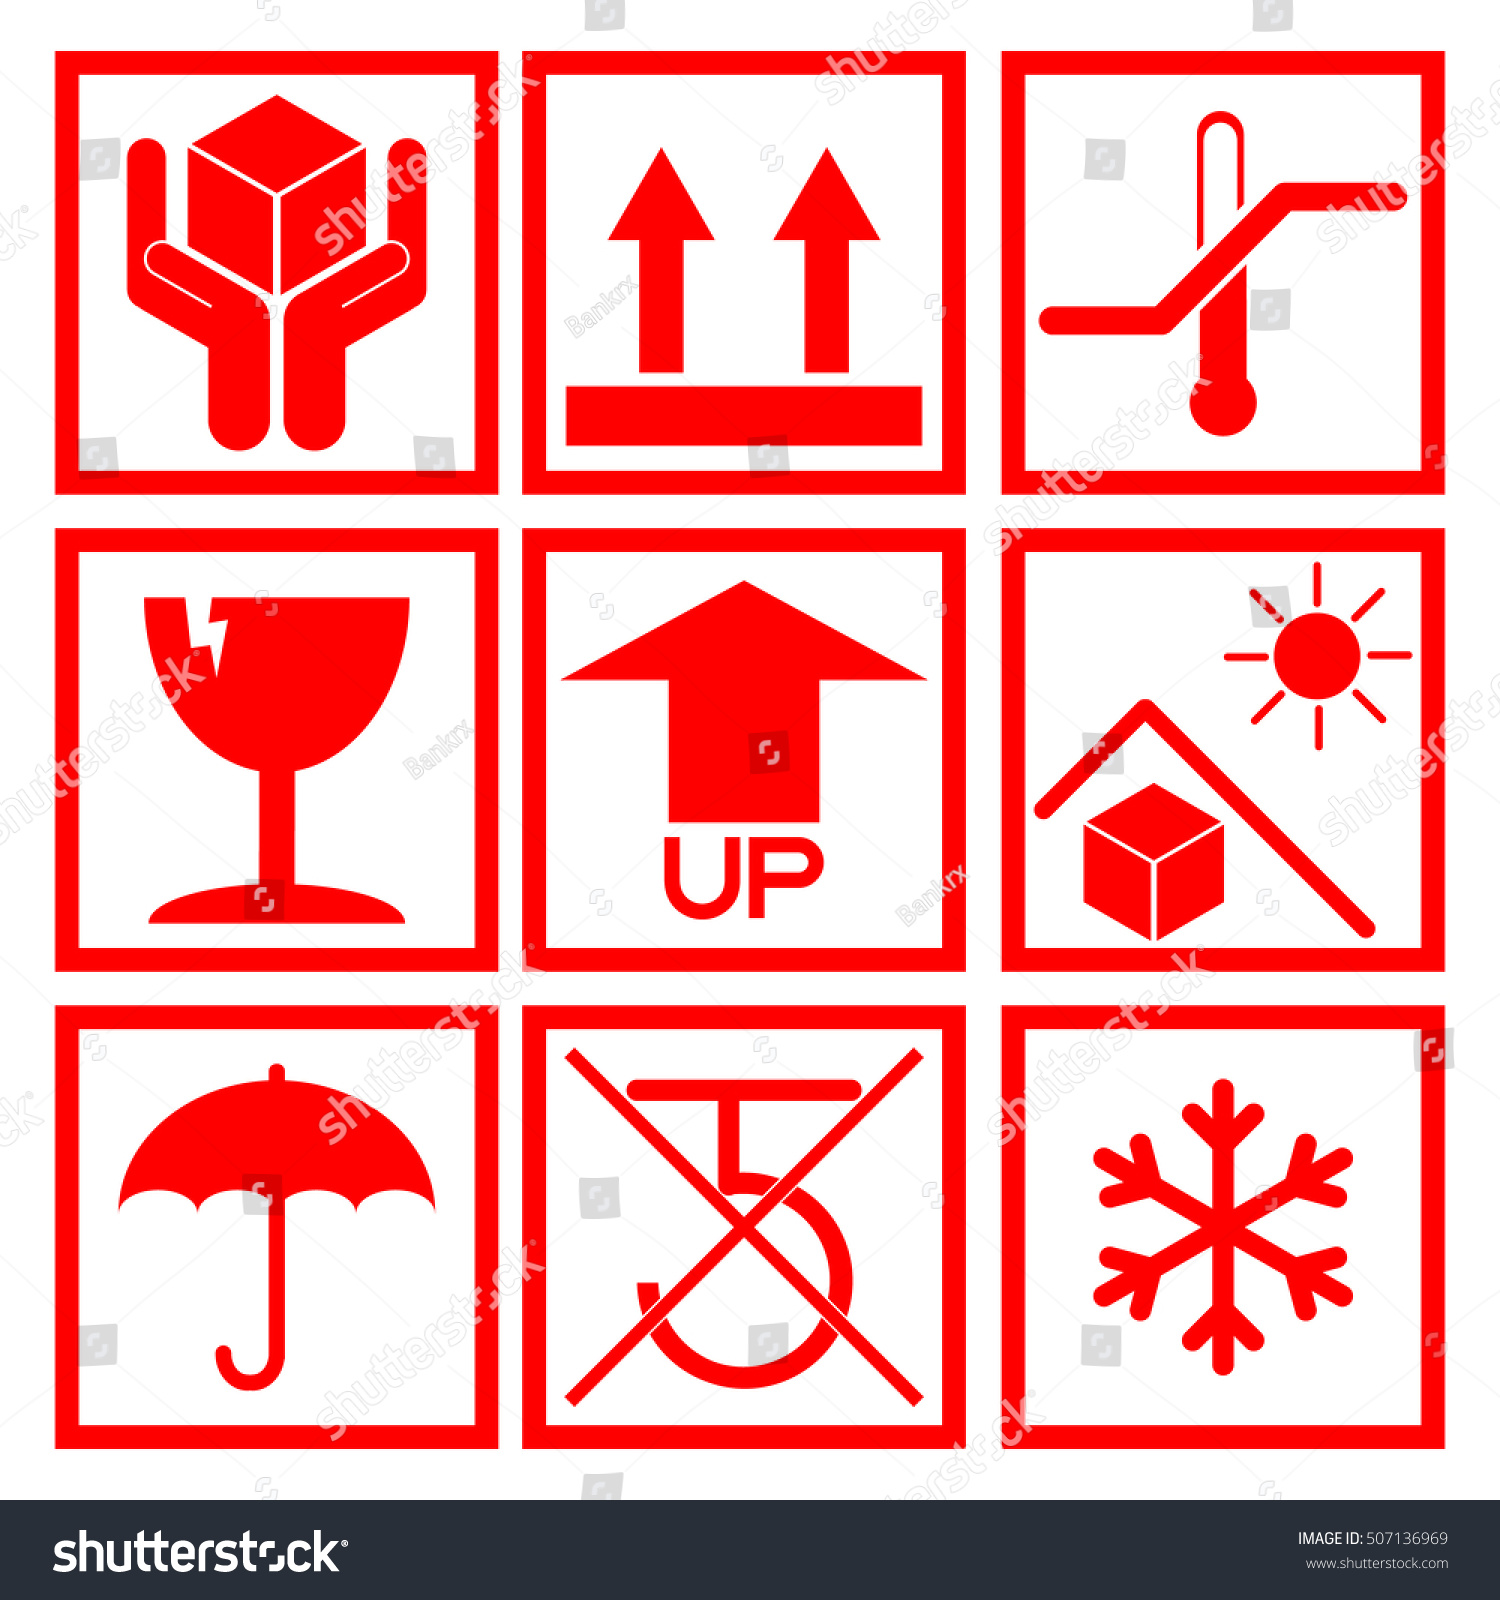 Royalty free set of red packaging symbol side up 507136969 set of red packaging symbol side up handle with care fragile no buycottarizona